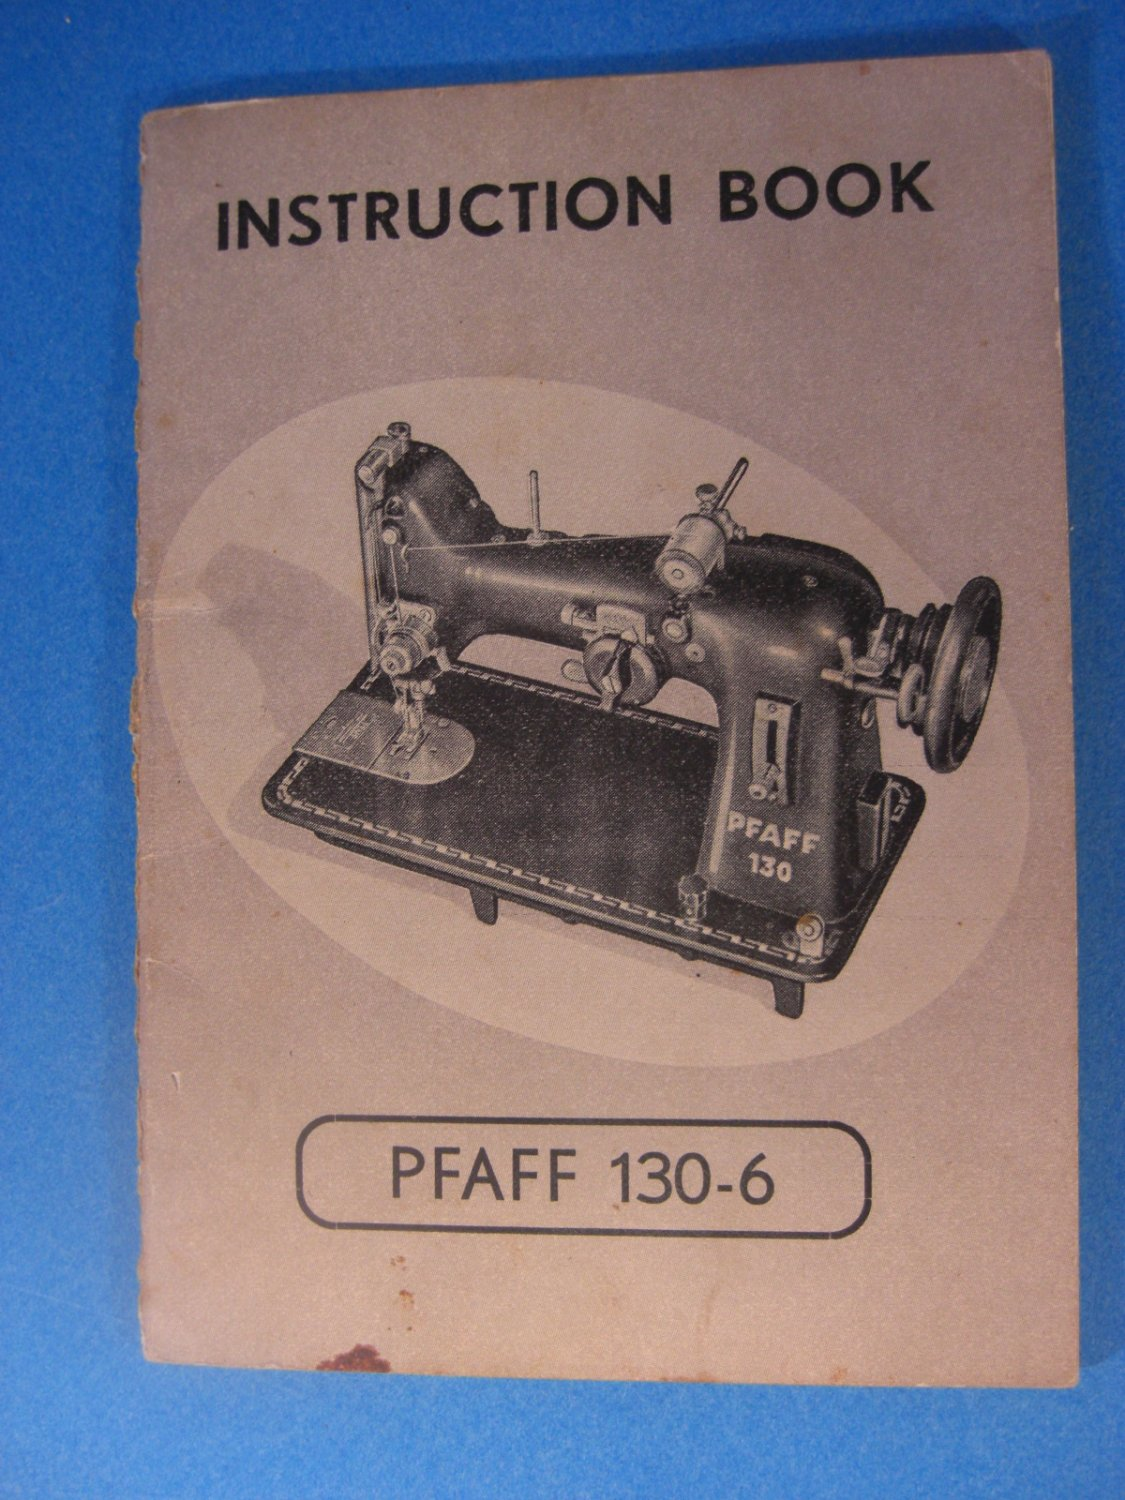 Pfaff Model 130-6 Instruction Manual